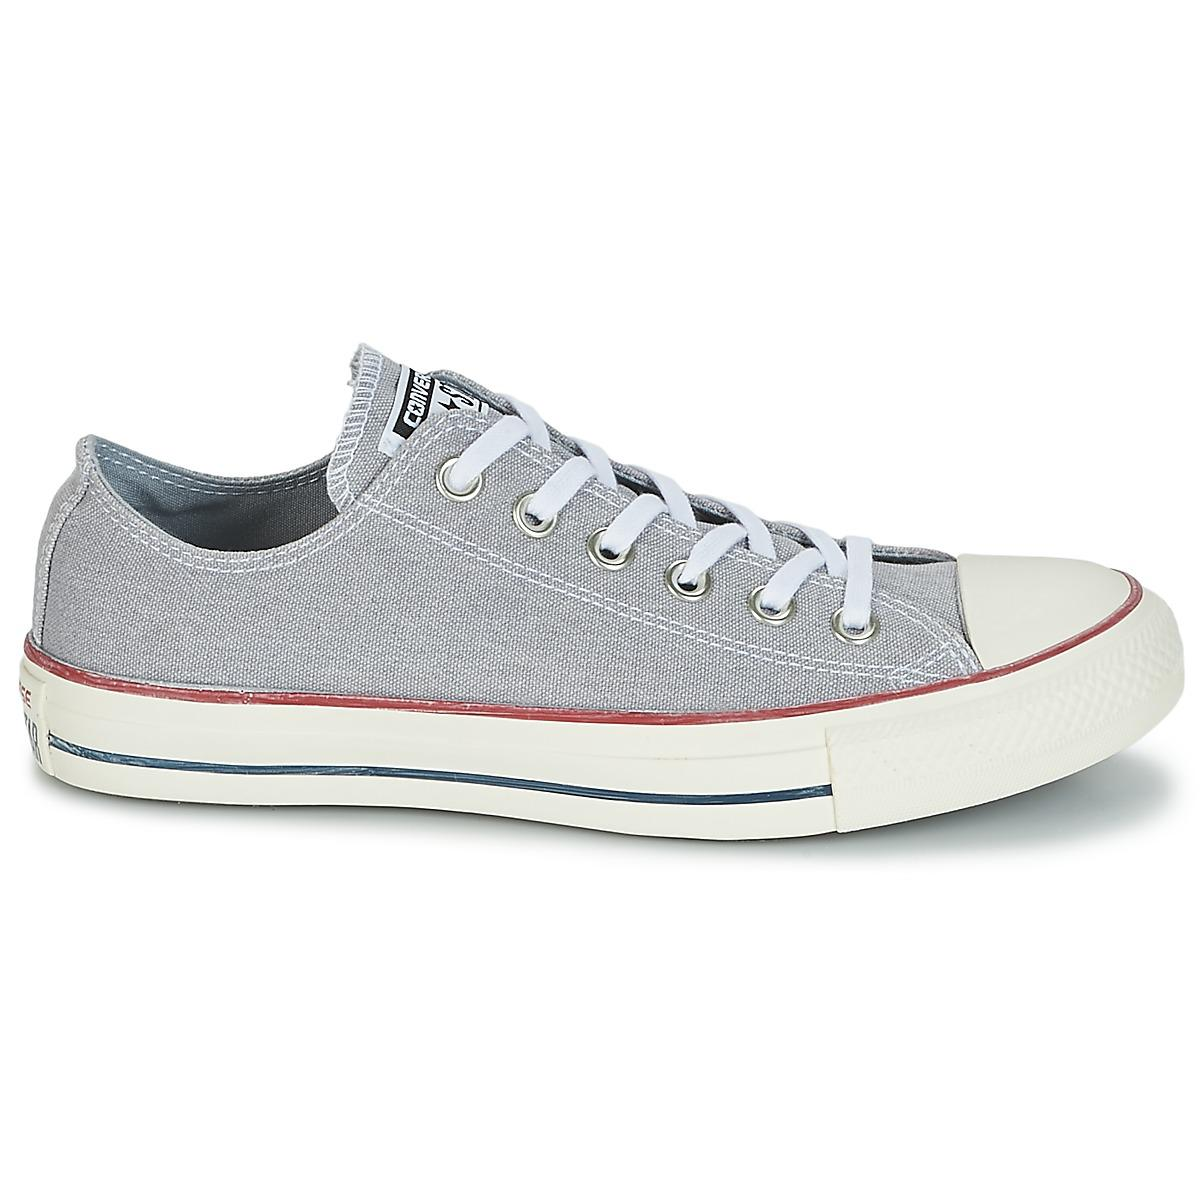 Converse Chuck Taylor All Star Ox Stone Wash Women's Shoes (trainers) In Grey in Grey